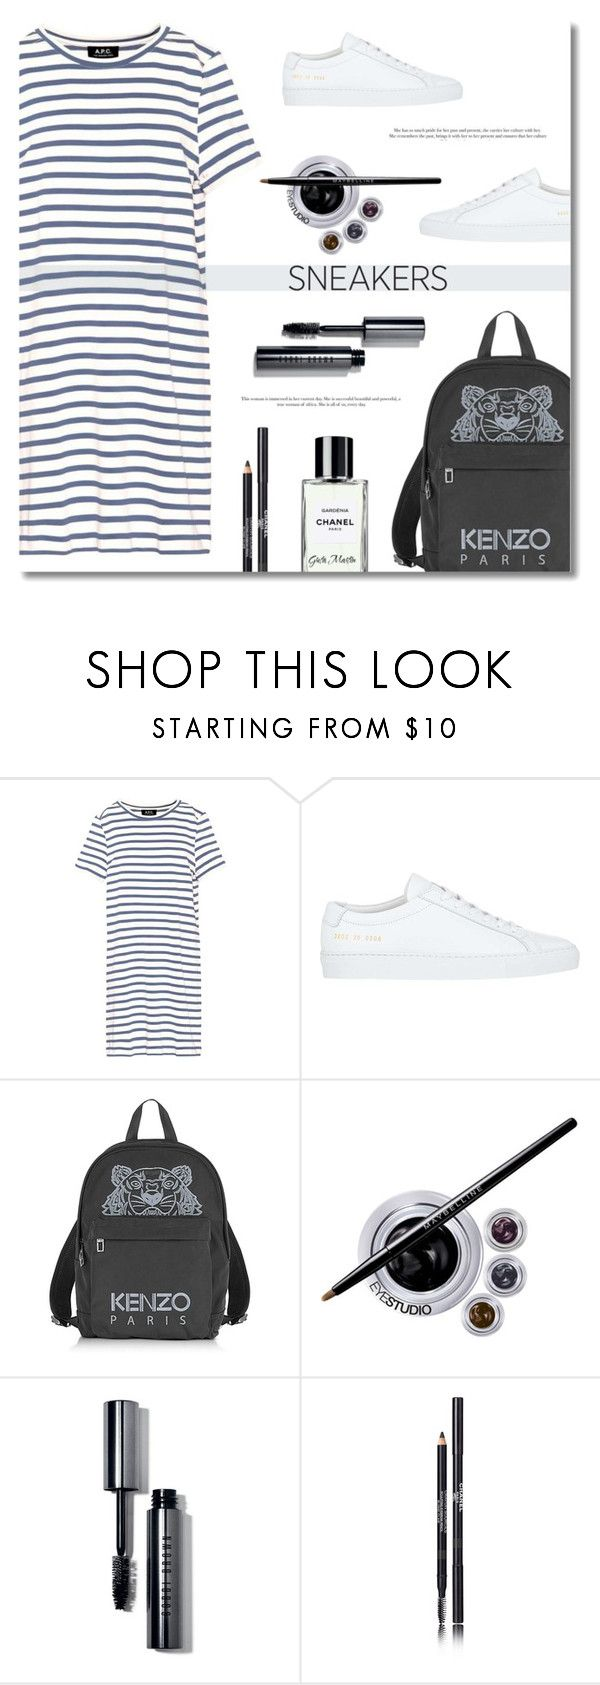 """""""So Fresh: White Sneakers ... 2017"""" by greta-martin ❤ liked on Polyvore featuring A.P.C., Common Projects, Kenzo, Maybelline, Bobbi Brown Cosmetics, Chanel, contestentry and whitesneakers"""